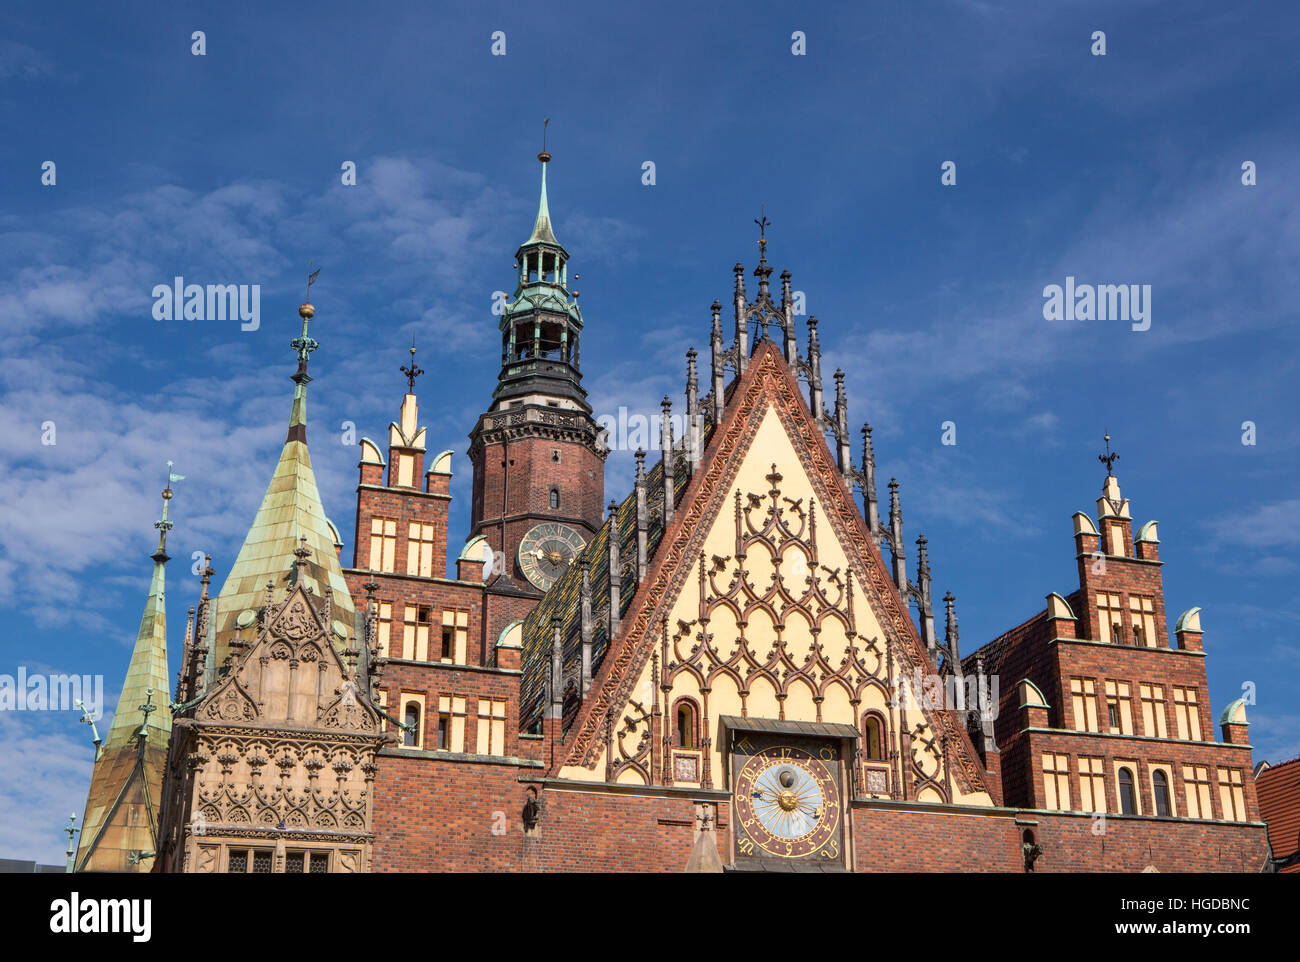 Town Hall in Wroclaw City - Stock Image